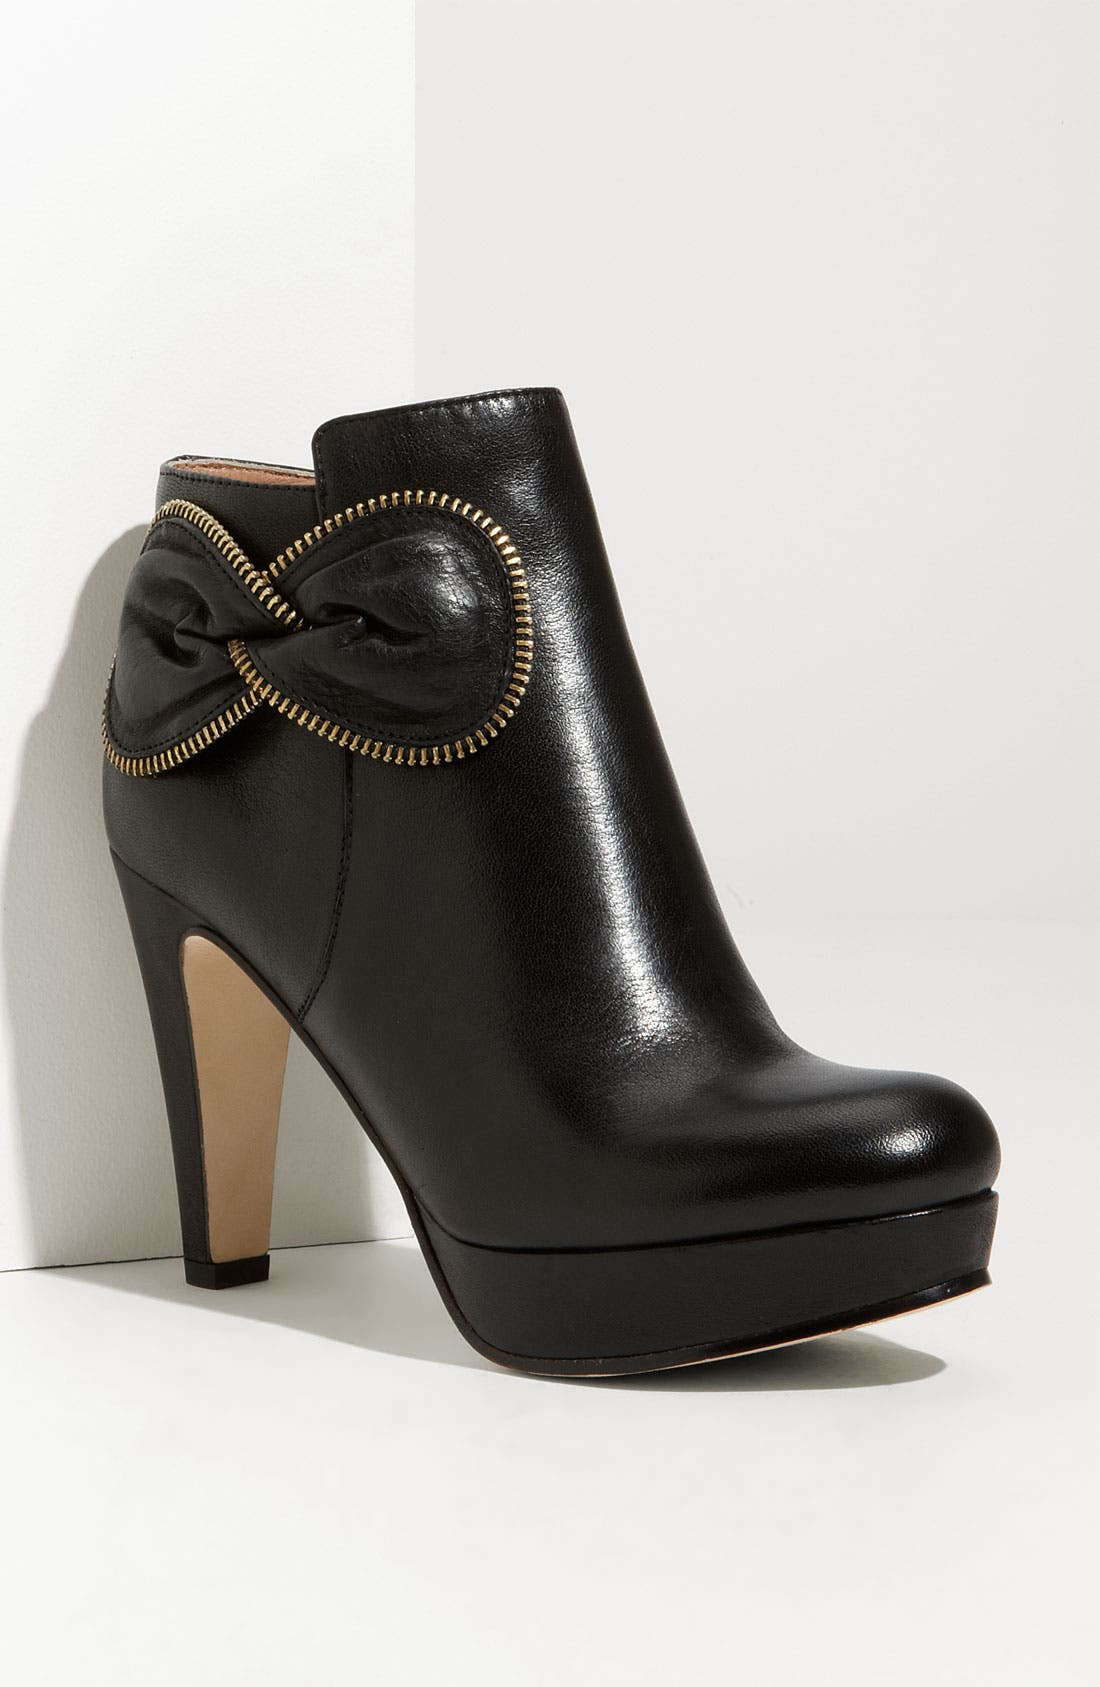 Alternate Image 1 Selected - See by Chloé Zip Bow Leather Bootie